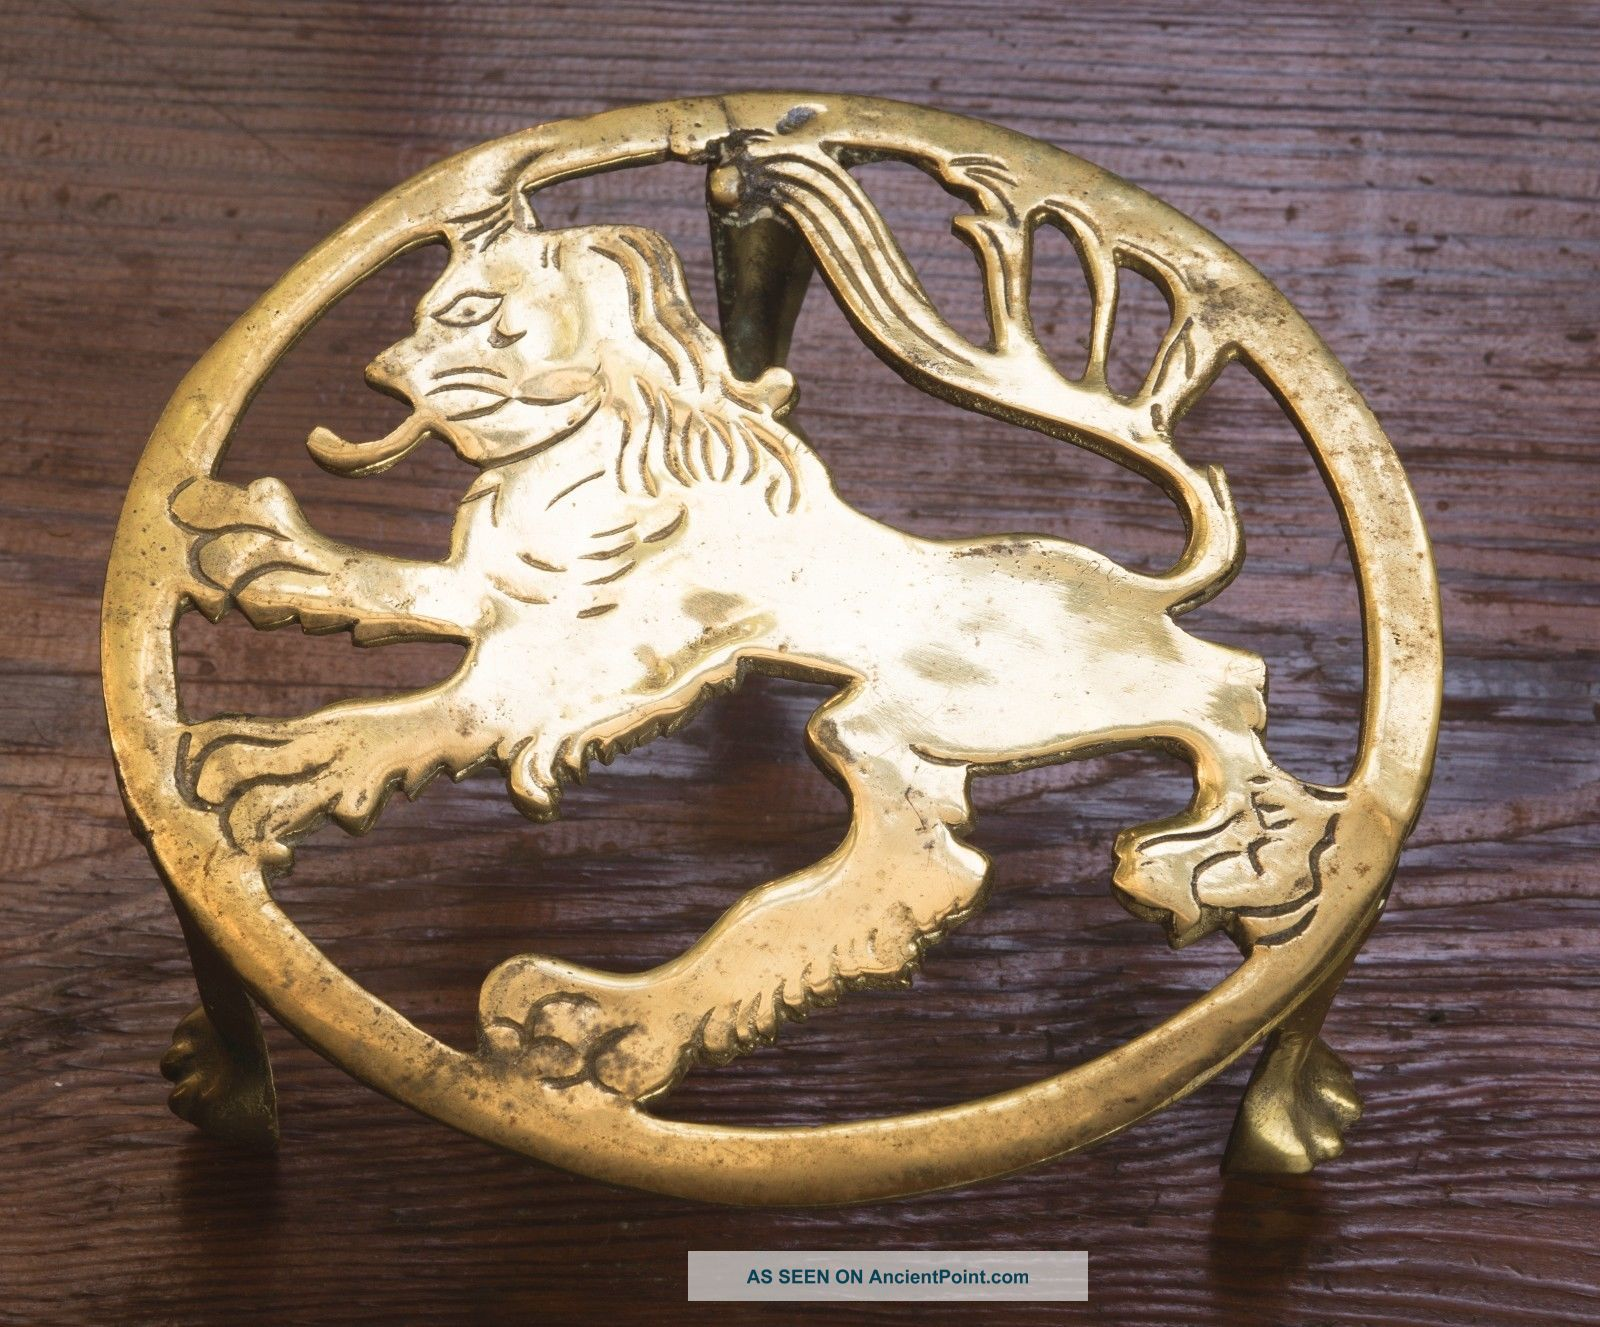 Vintage English Fireplace Brass Lion Ball & Claw Kettle Stand Trivet Pot Stand Trivets photo